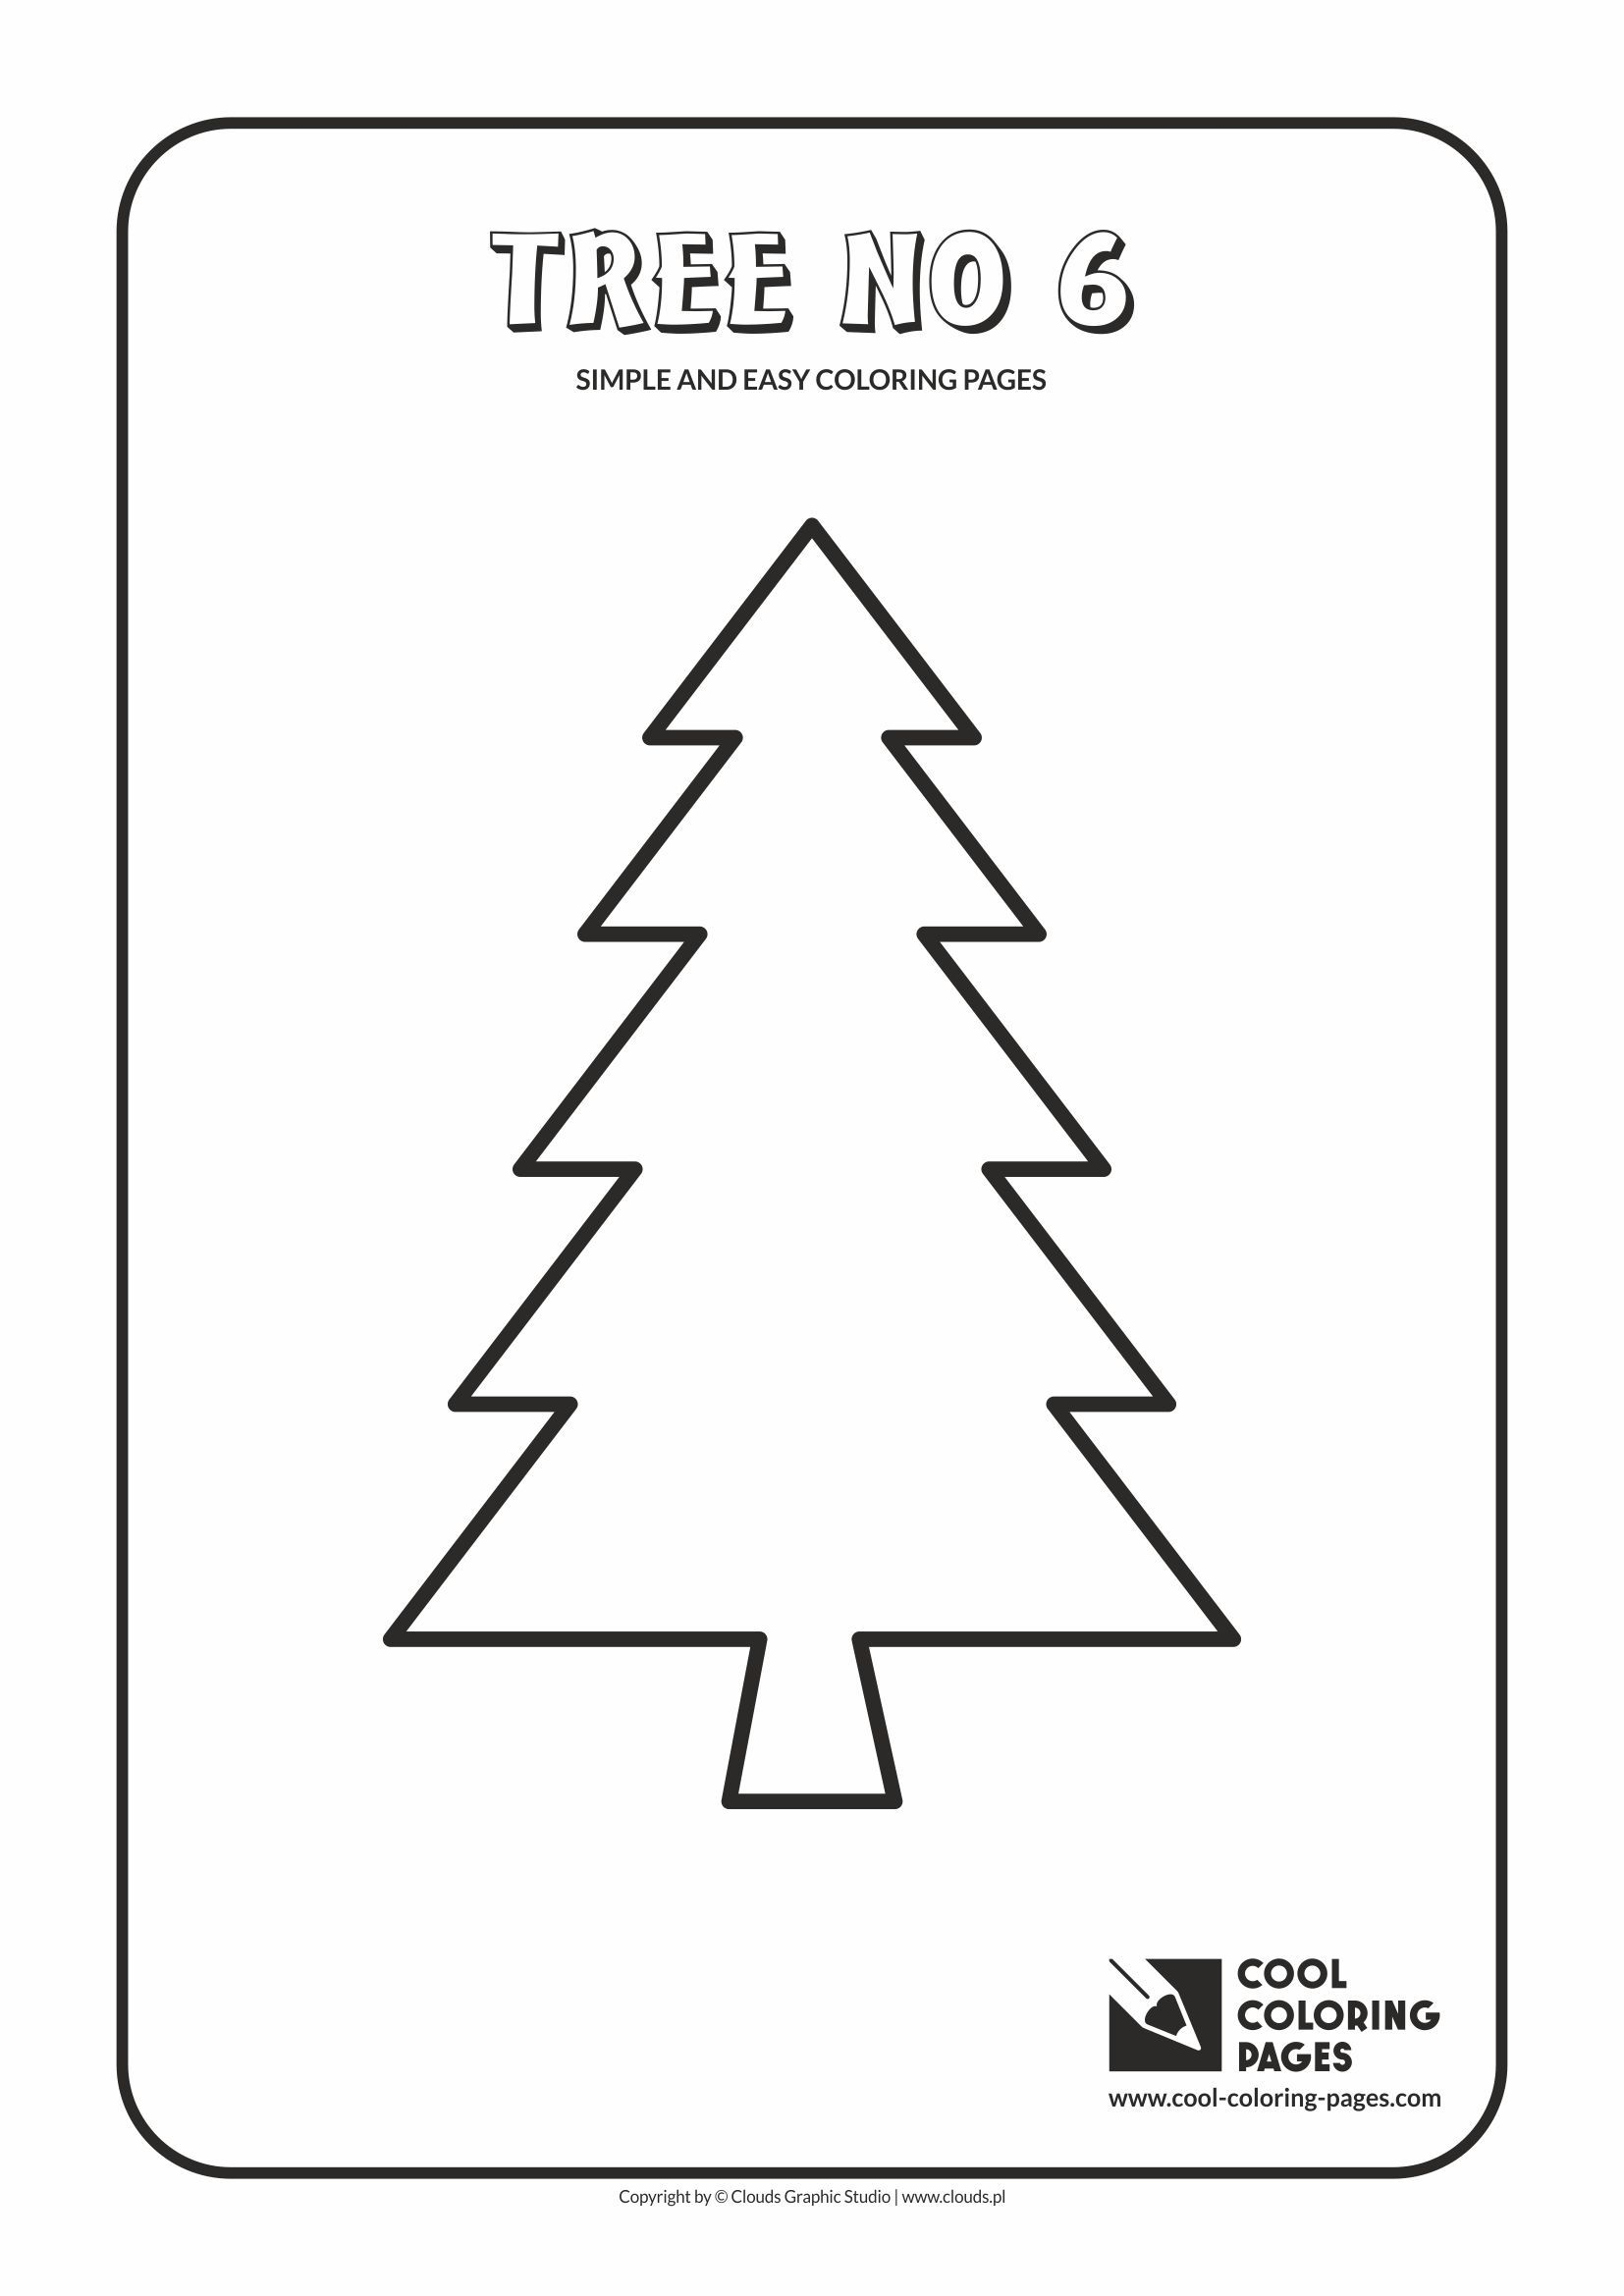 Easy coloring pages for toddlers - Simple And Easy Coloring Pages For Toddlers Tree No 6